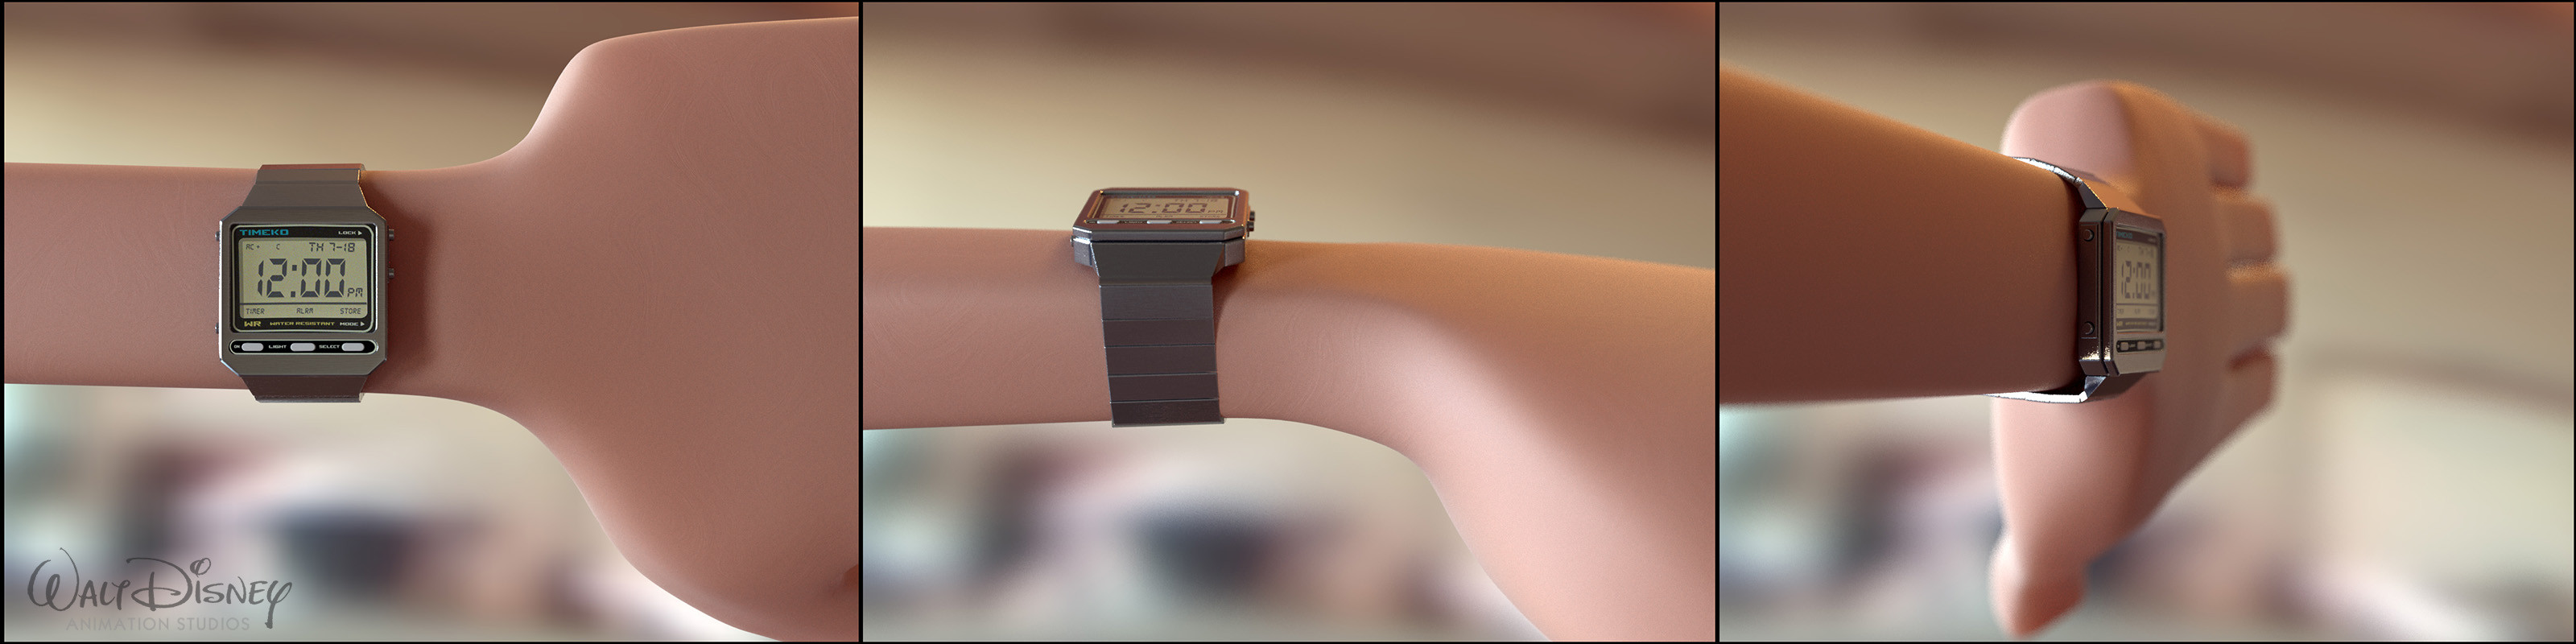 80's Style Watch